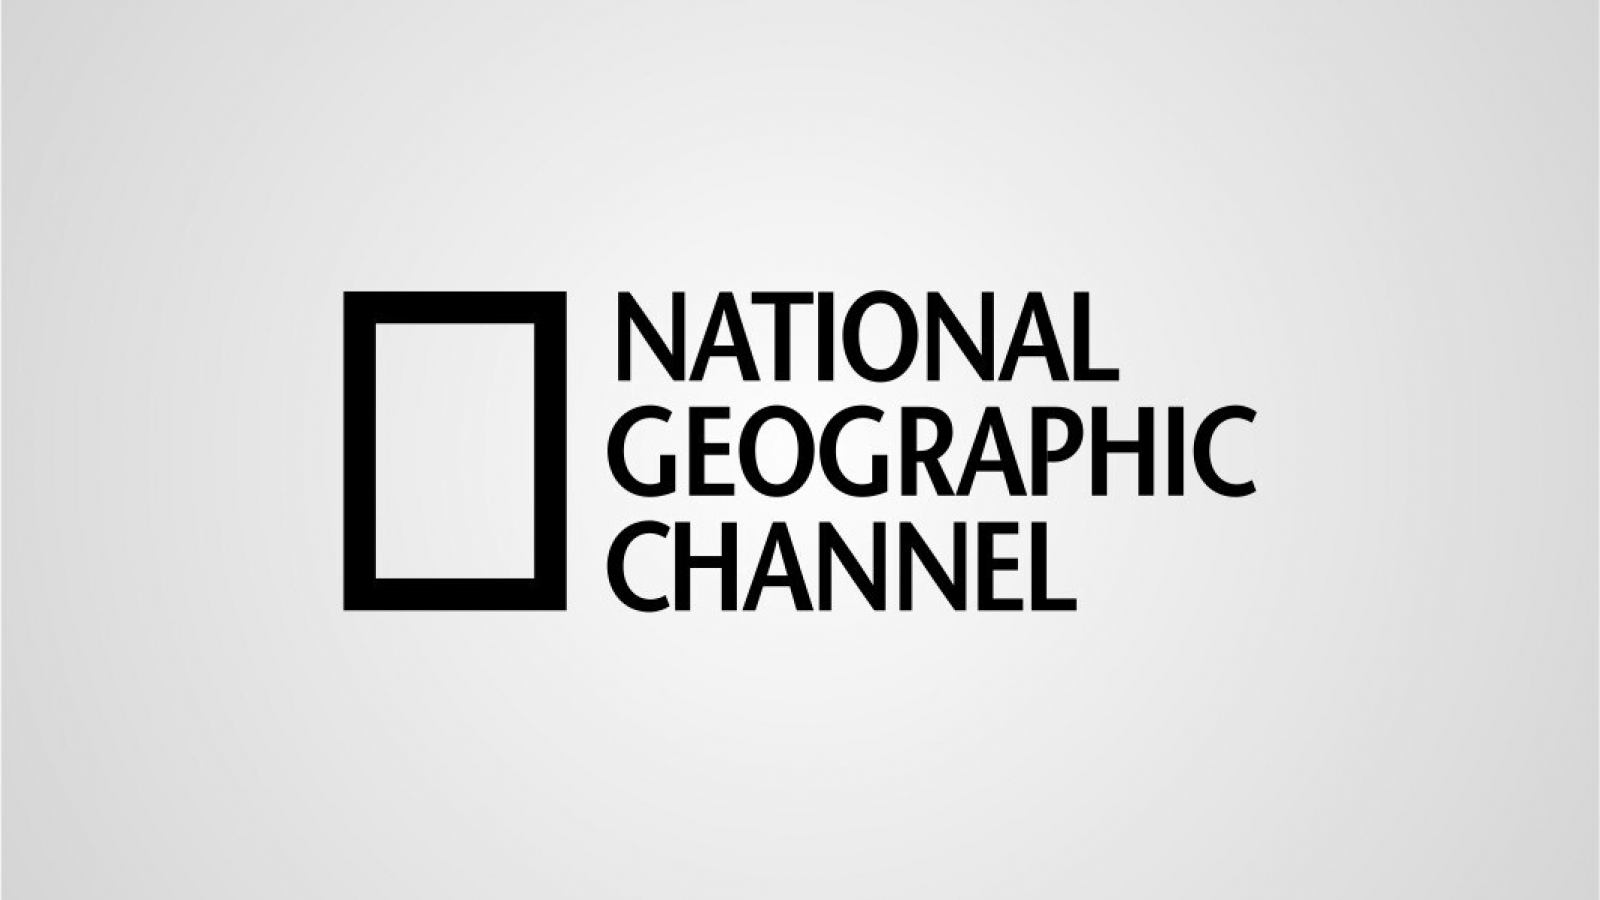 National Geographic Channel SVG cut file